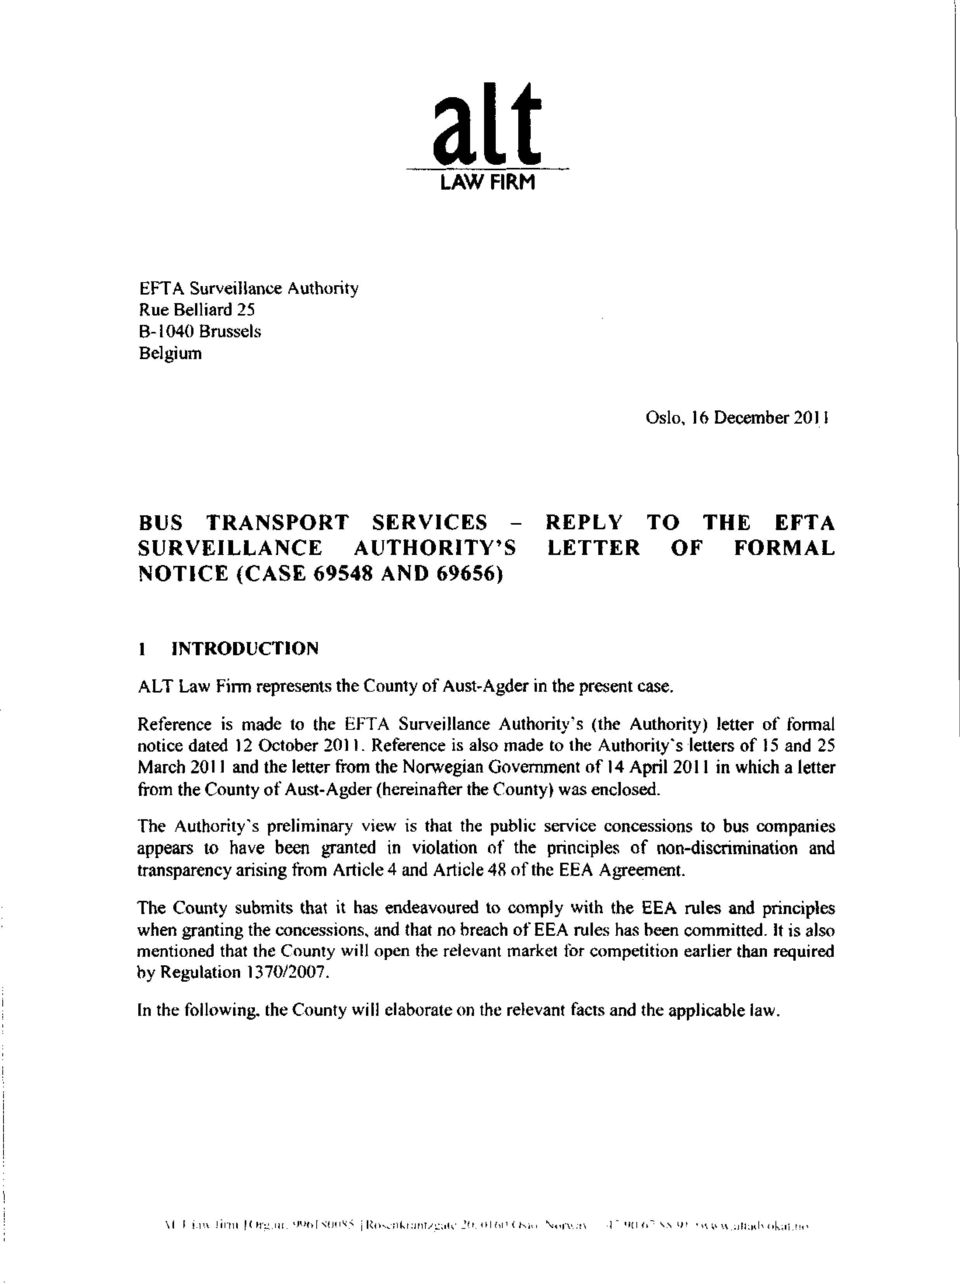 Reference is made to the EFTA Surveillance Authority's (the Authority) letter of formal notice dated 12 October 2011.